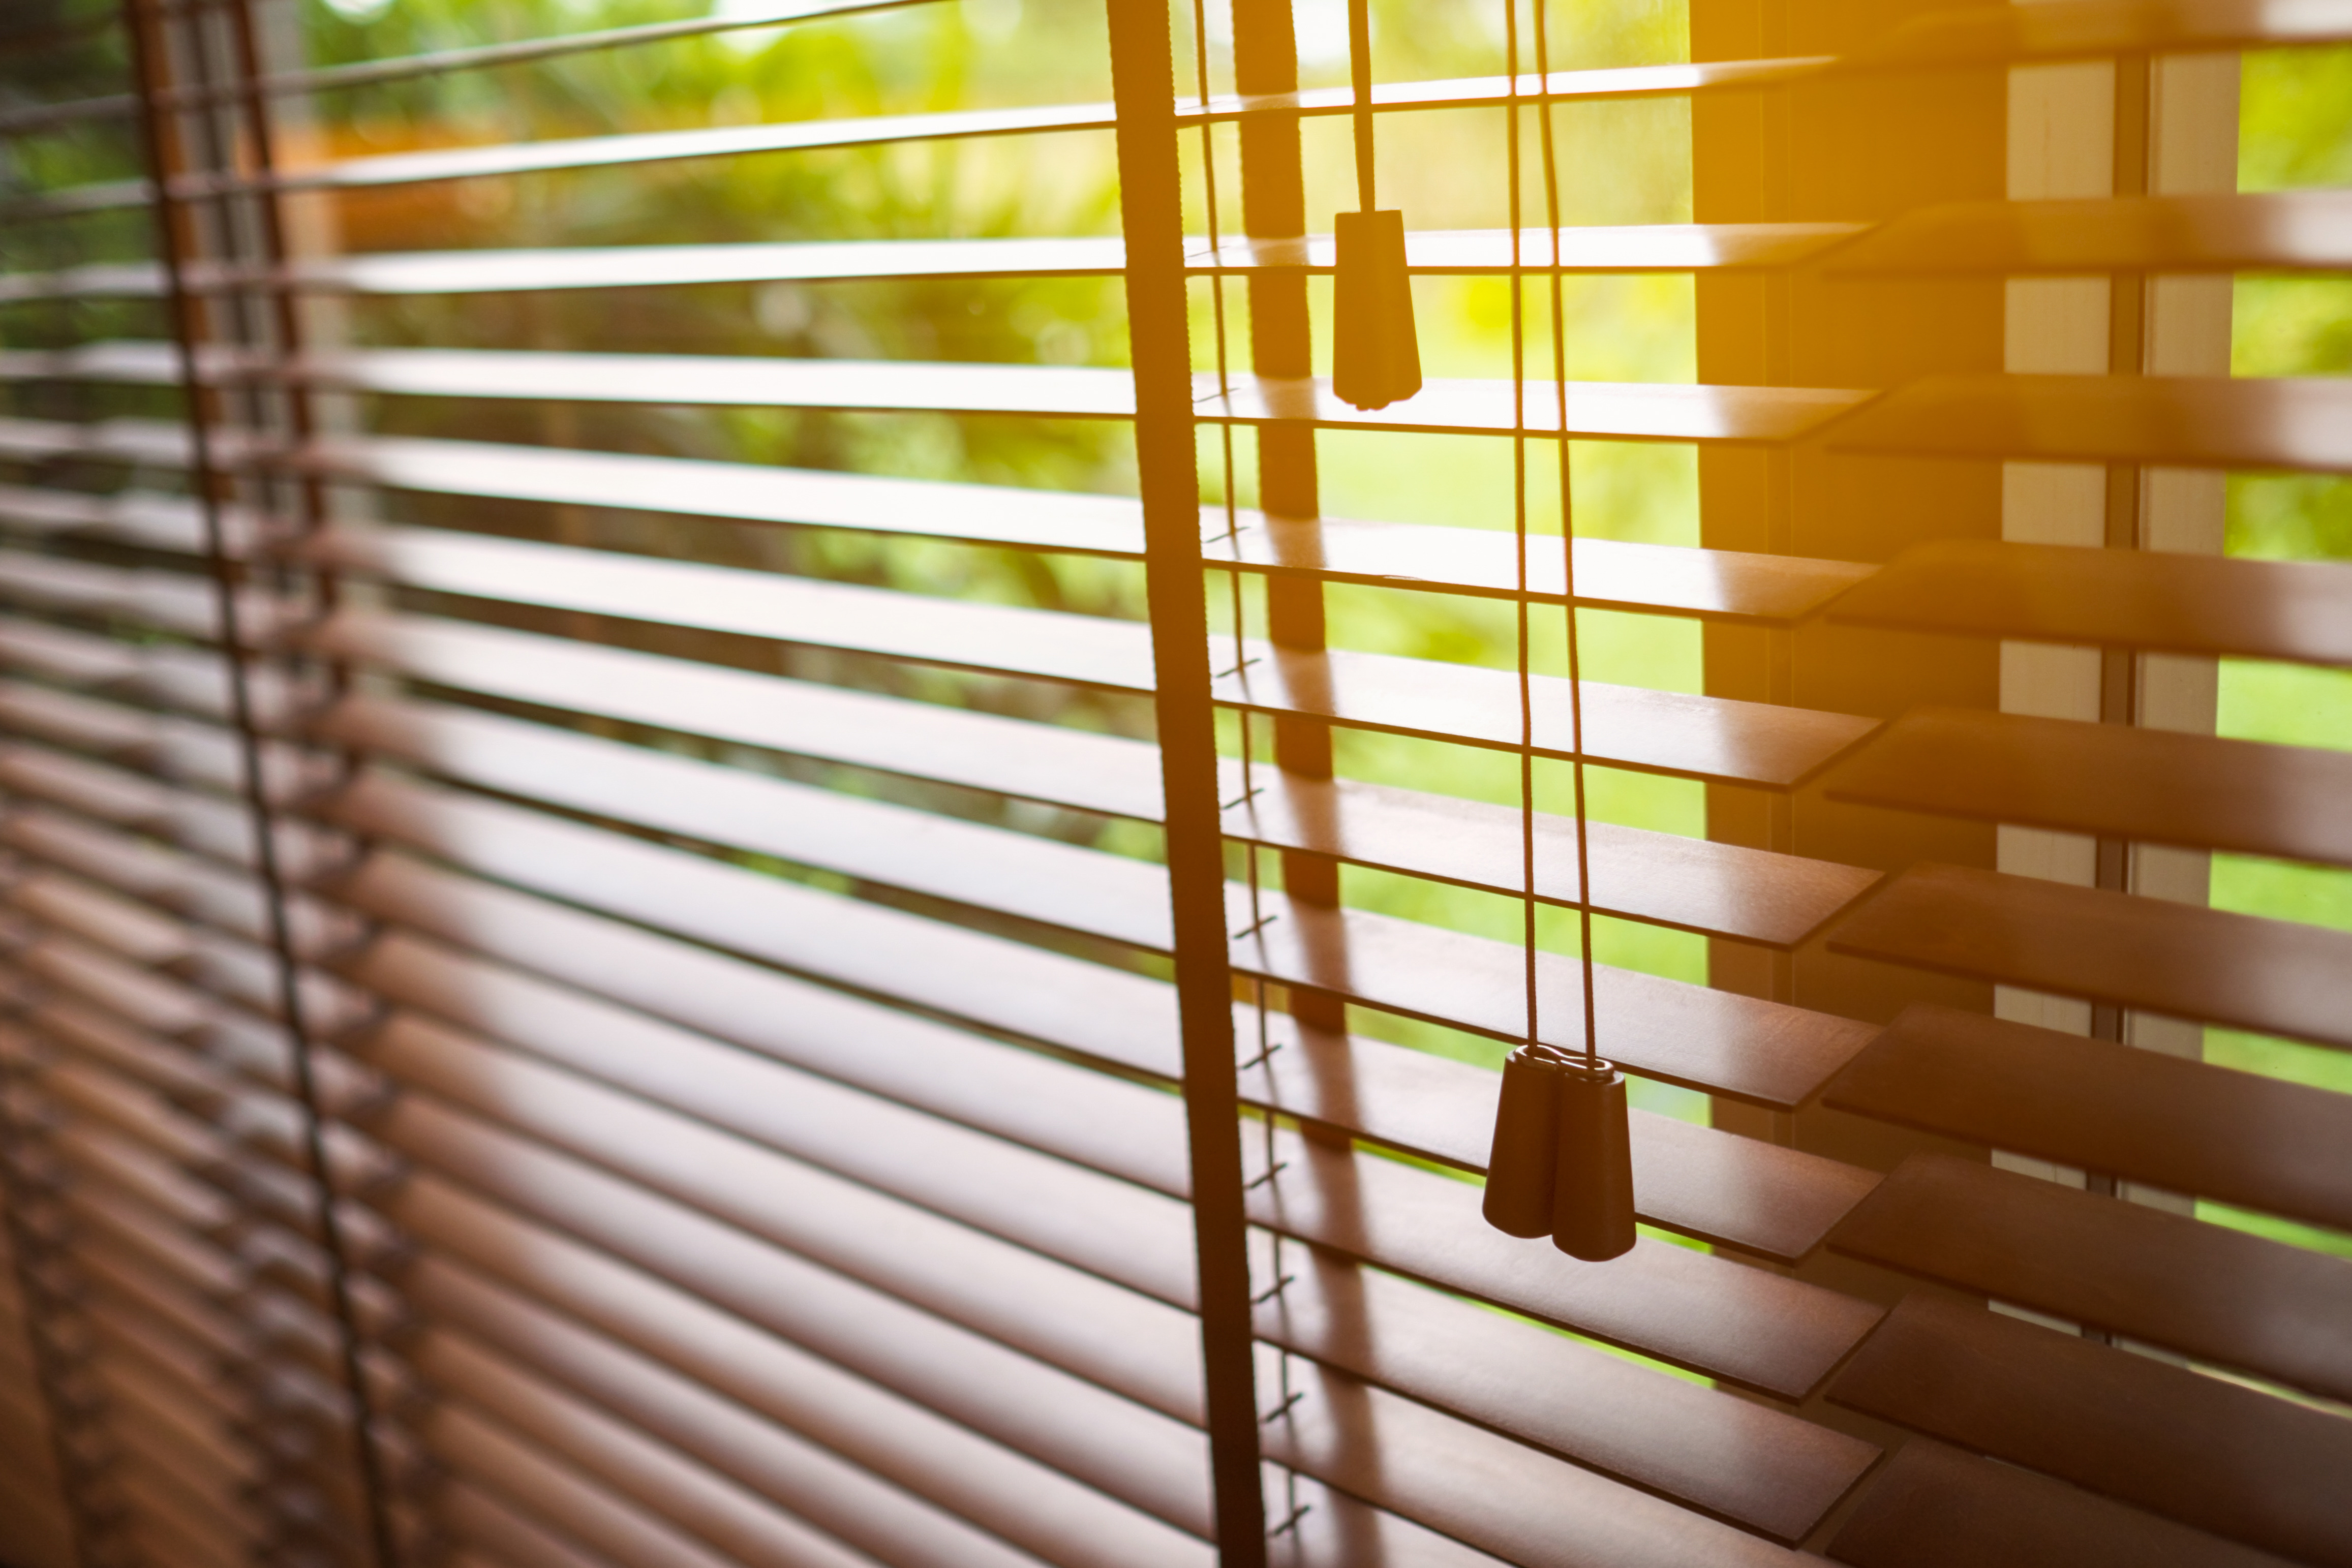 Citing danger to children, industry to limit sales of blinds with long cords